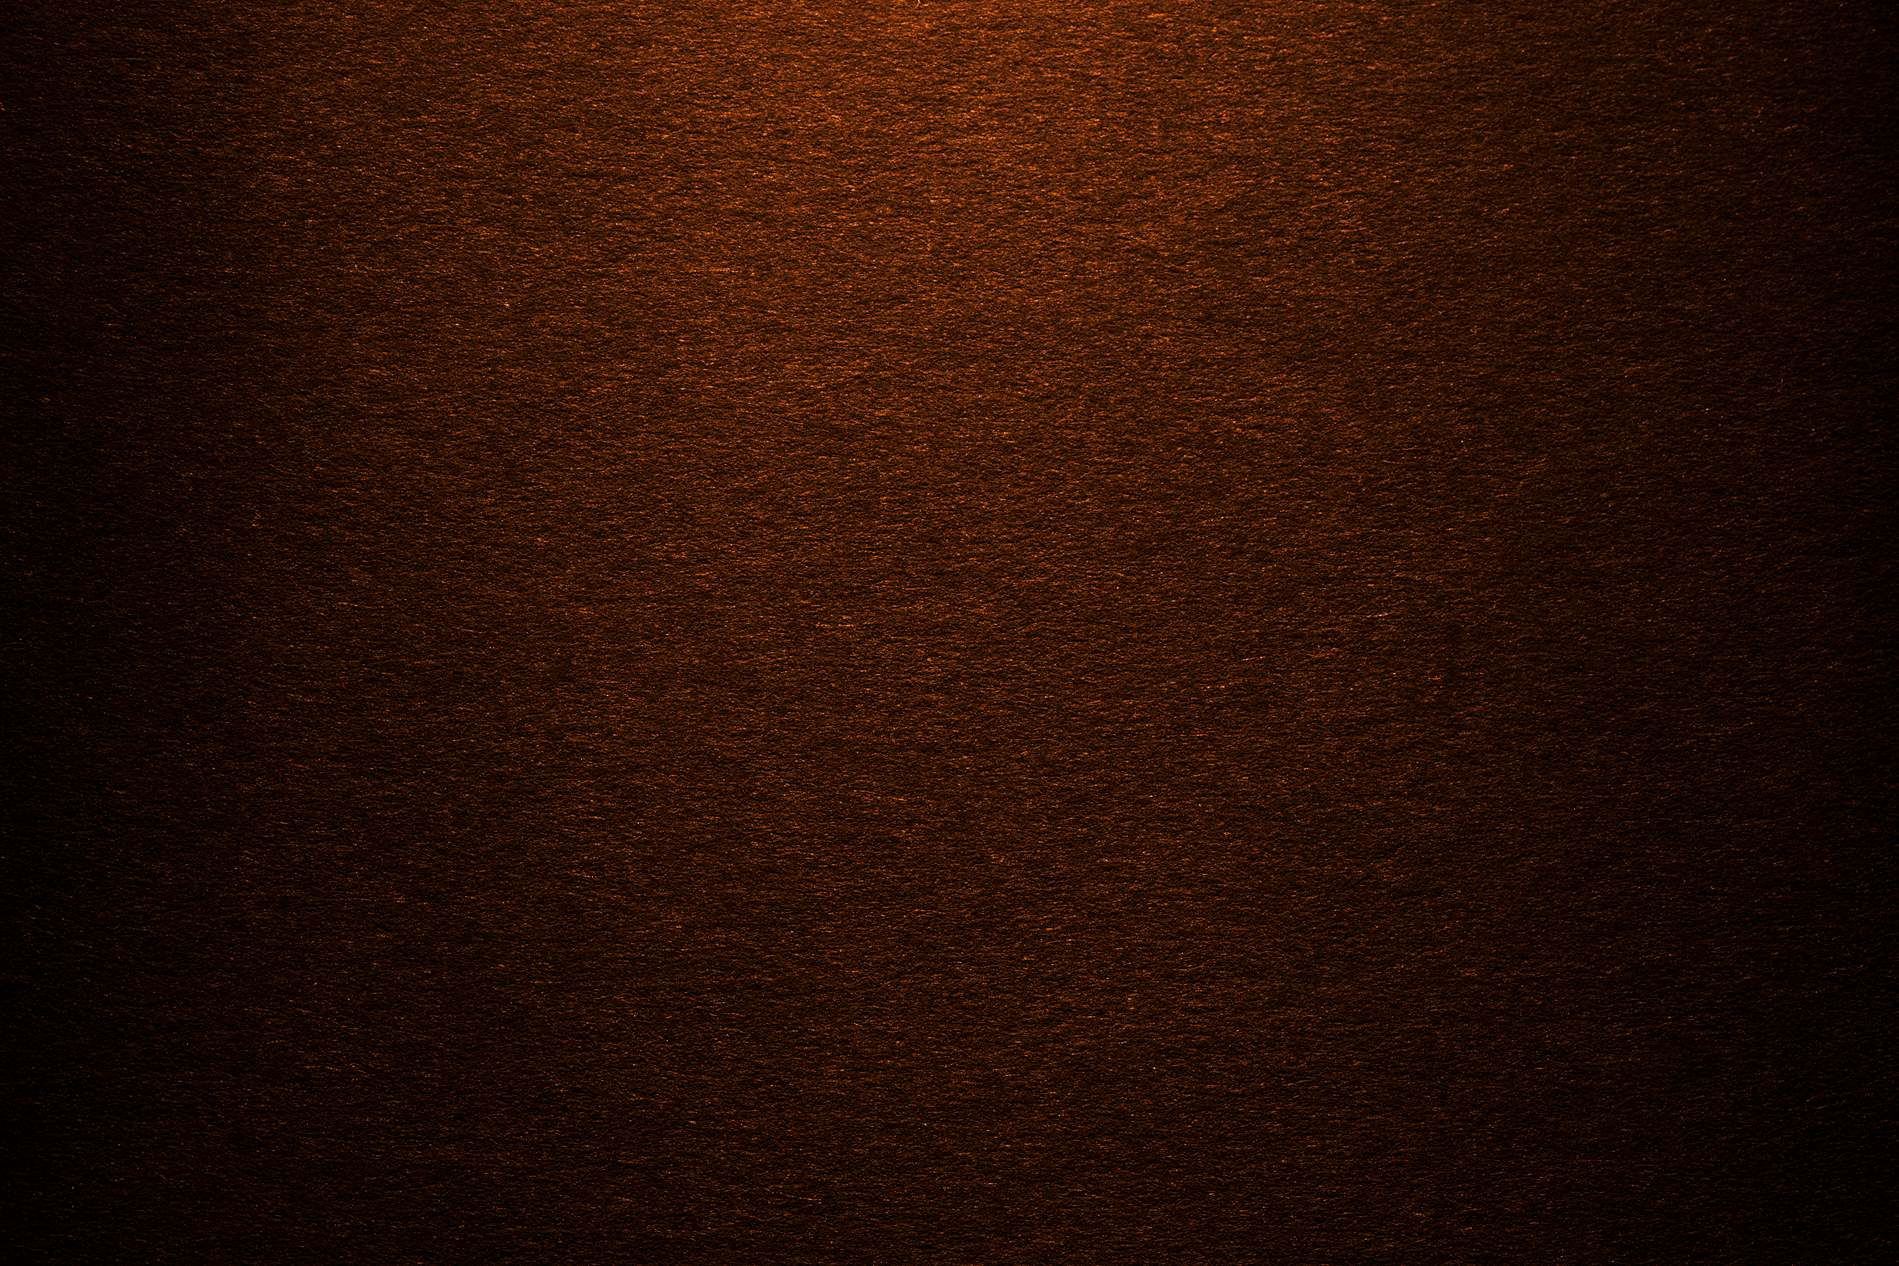 Clean brown golden background texture photohdx for 3d brown wallpaper